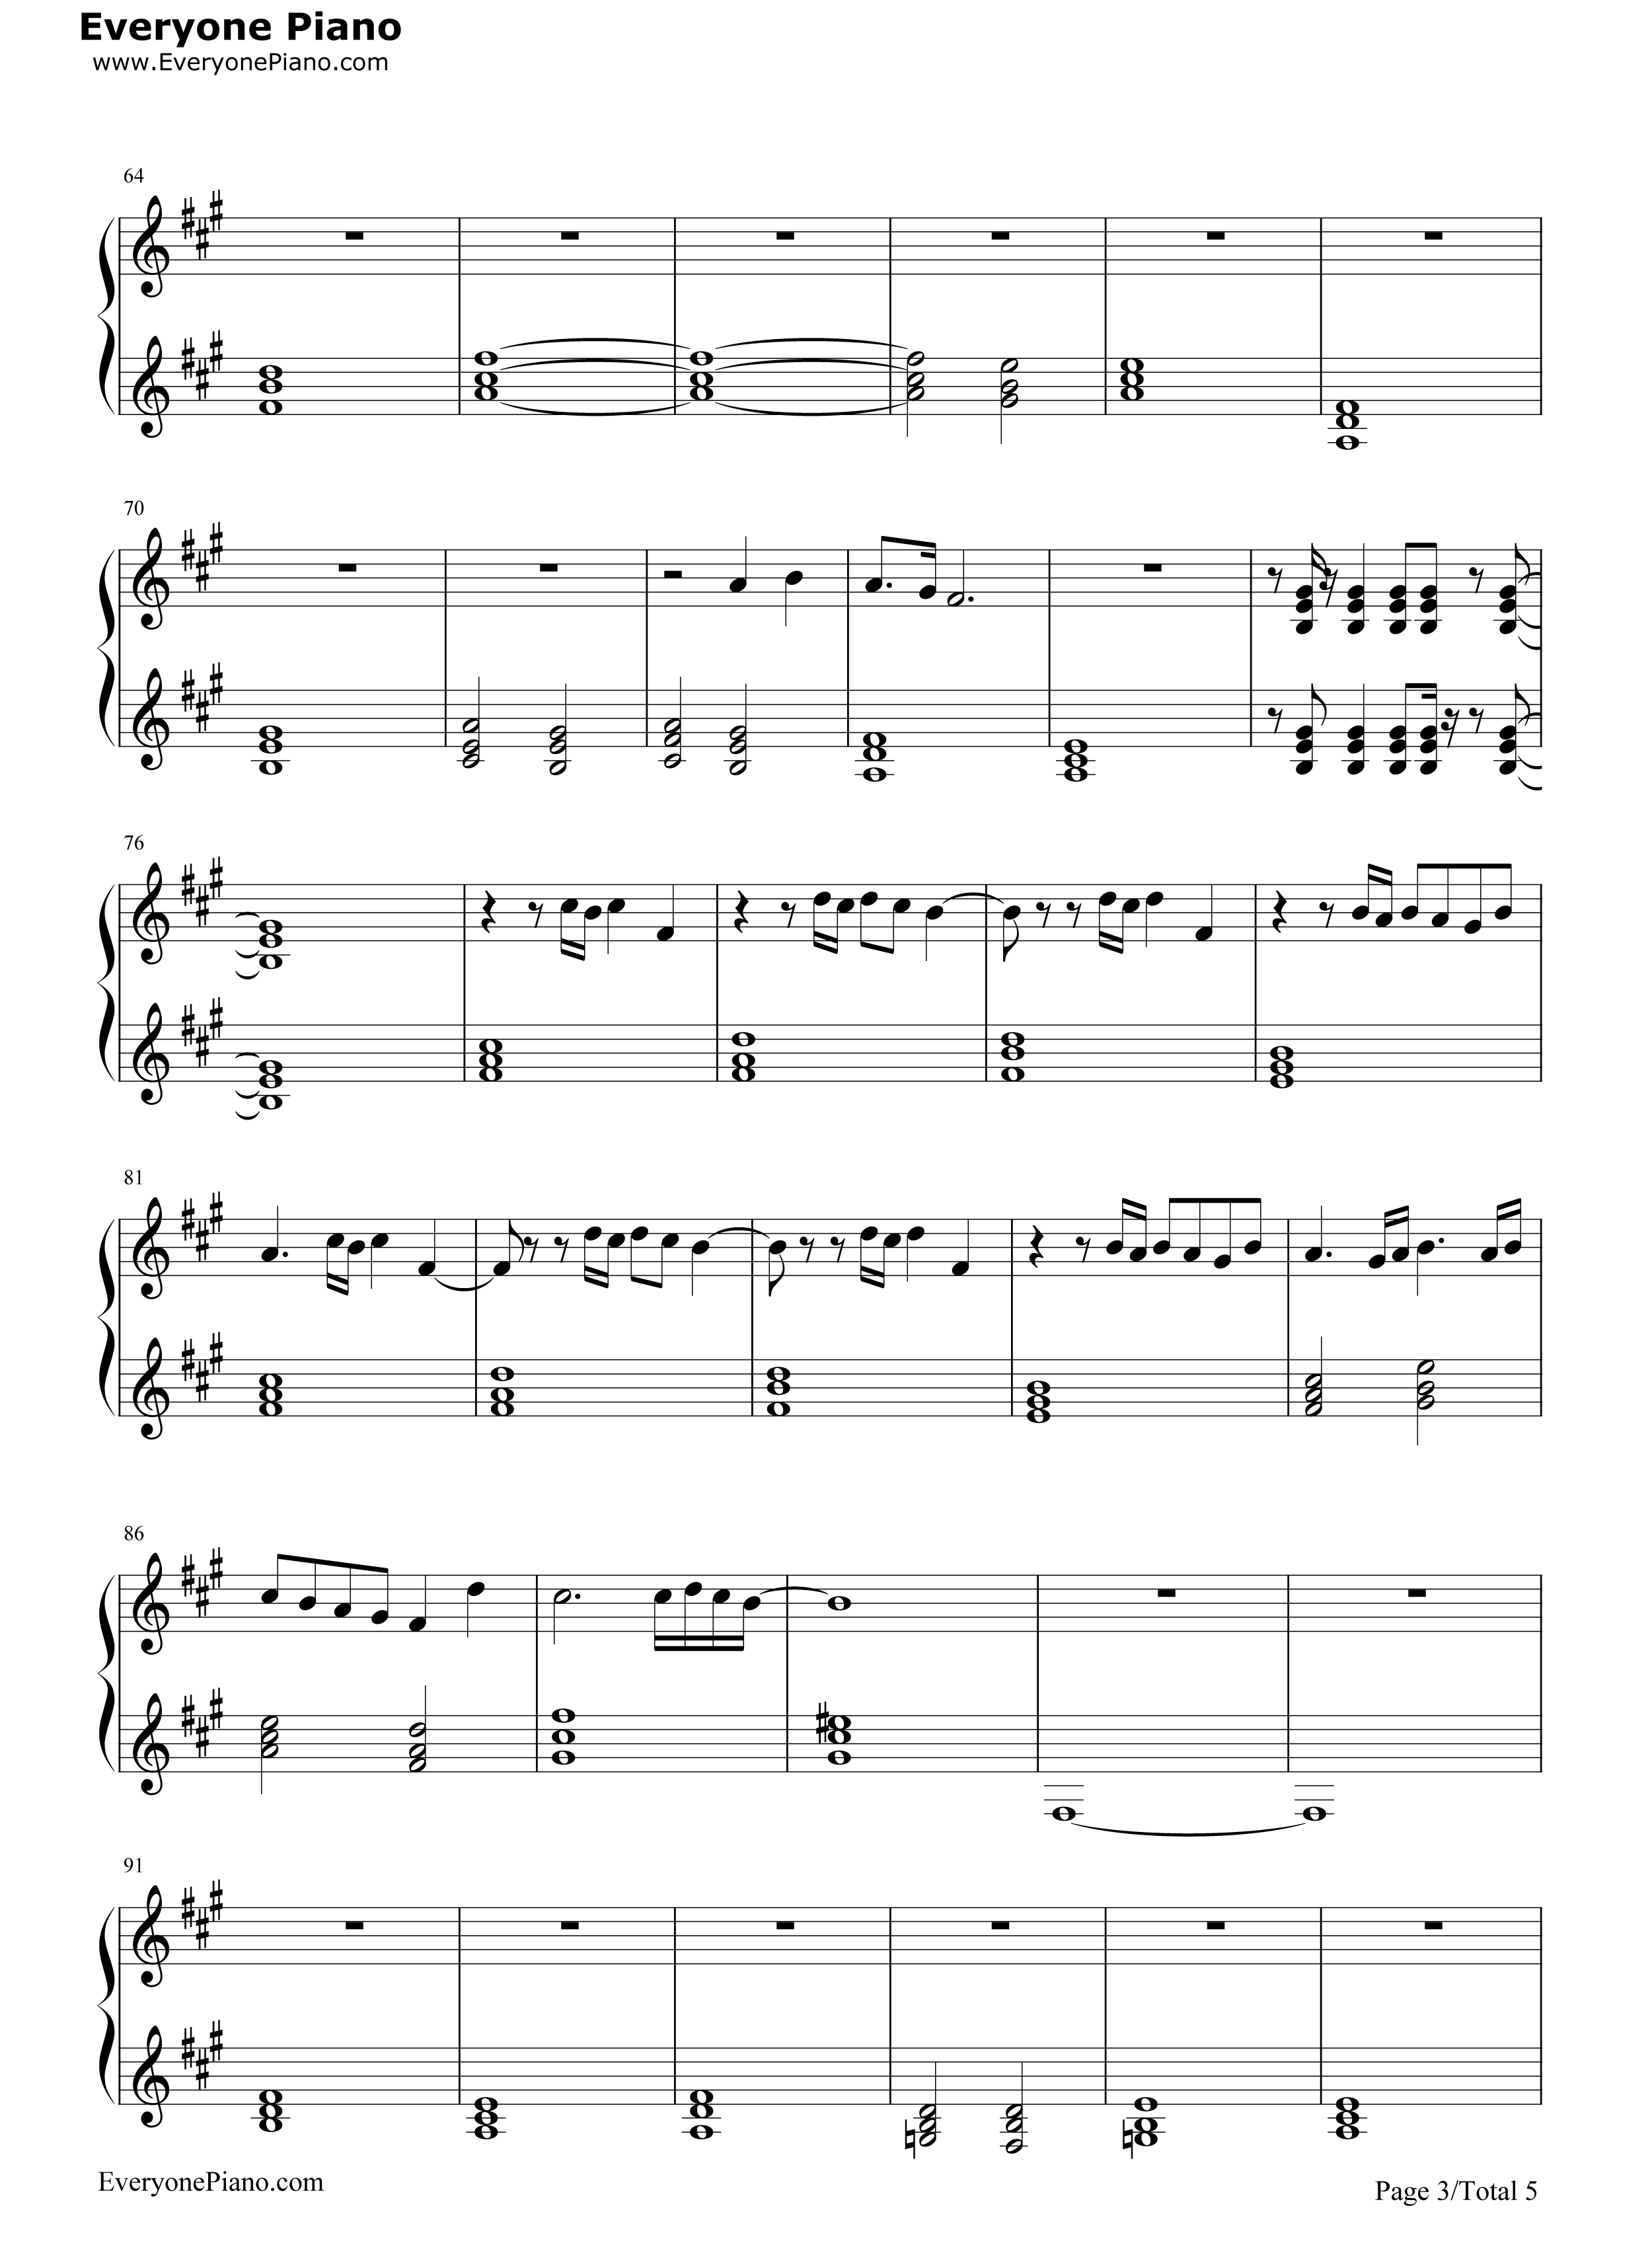 The final countdown europe stave preview 3 free piano sheet music listen now print sheet the final countdown europe stave preview 3 hexwebz Gallery